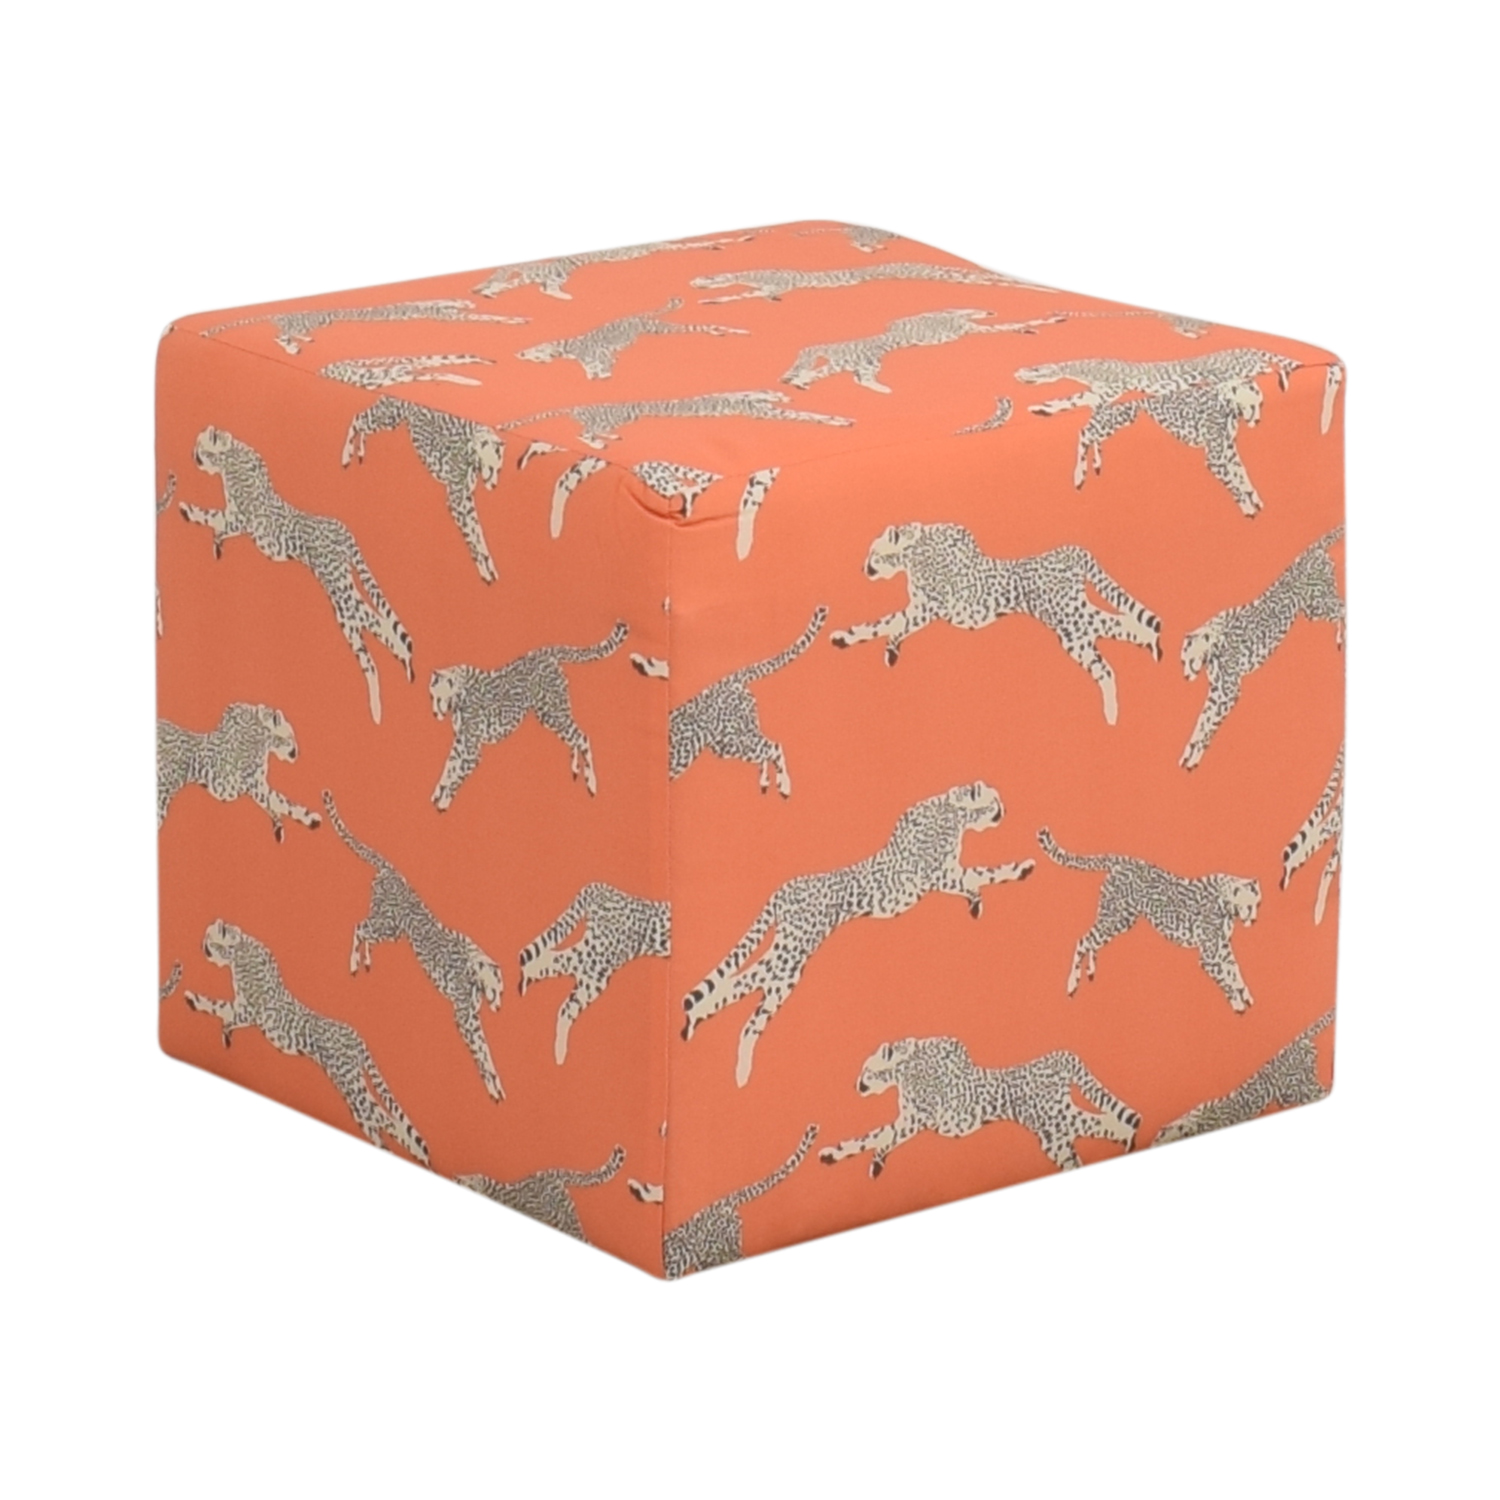 The Inside The Inside Cube Ottoman Henna Cheetah by Scalamandré on sale